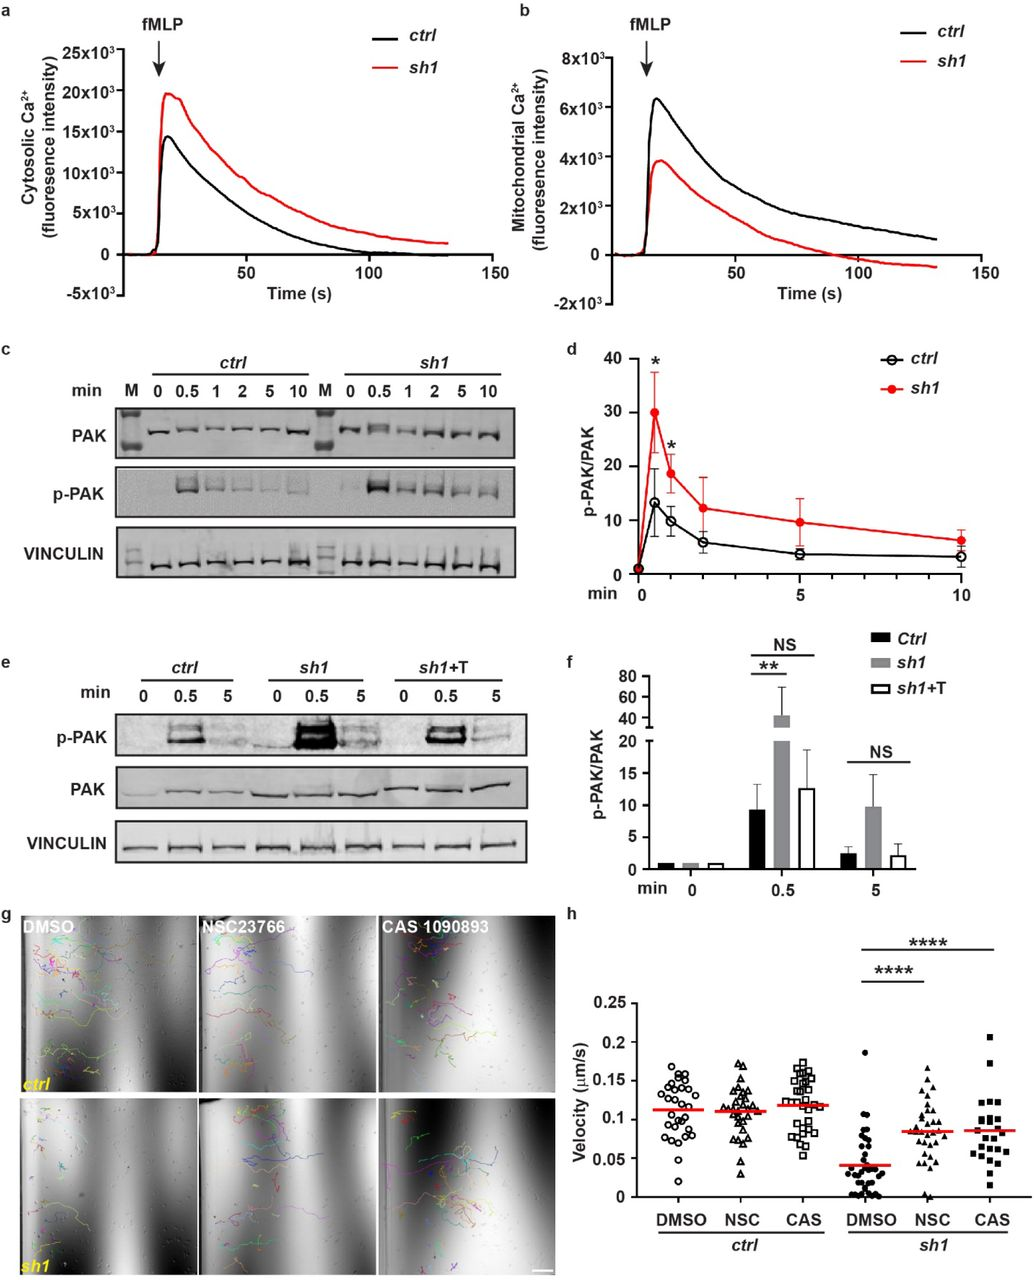 Mitochondria-ER tether restores RAC signaling and neutrophil chemotaxis in MFN2-deficient HL-60 cells. a) Cytosolic Ca 2+ in the control or MFN2 knockdown cell lines after fMLP stimulation. b) Mitochondrial Ca 2+ in the control or MFN2 knockdown cell lines after fMLP stimulation. c) Western blot determining the amount of pPAK in dHL-60 treated with fMLP at indicated time points. d) Quantification of p-PAK in different cell lines at indicated time points after fMLP stimulation a). e) Western blot determining the amount of pPAK in dHL-60 treated with fMLP at indicated time points and f) quantification of p-PAK in different cell lines at indicated time points after fMLP stimulation. g) Quantification of velocity of neutrophil chemotaxis to fMLP in the presence of vehicle or the Rac inhibitor NSC23766 or CAS1090893. h) Representative images with individual tracks. One representative result of three biological repeats is shown in a, b, c, e, g and h. Data are pooled from three independent experiments in d and f. n > 20 cells were tracked or quantified in h. *, p